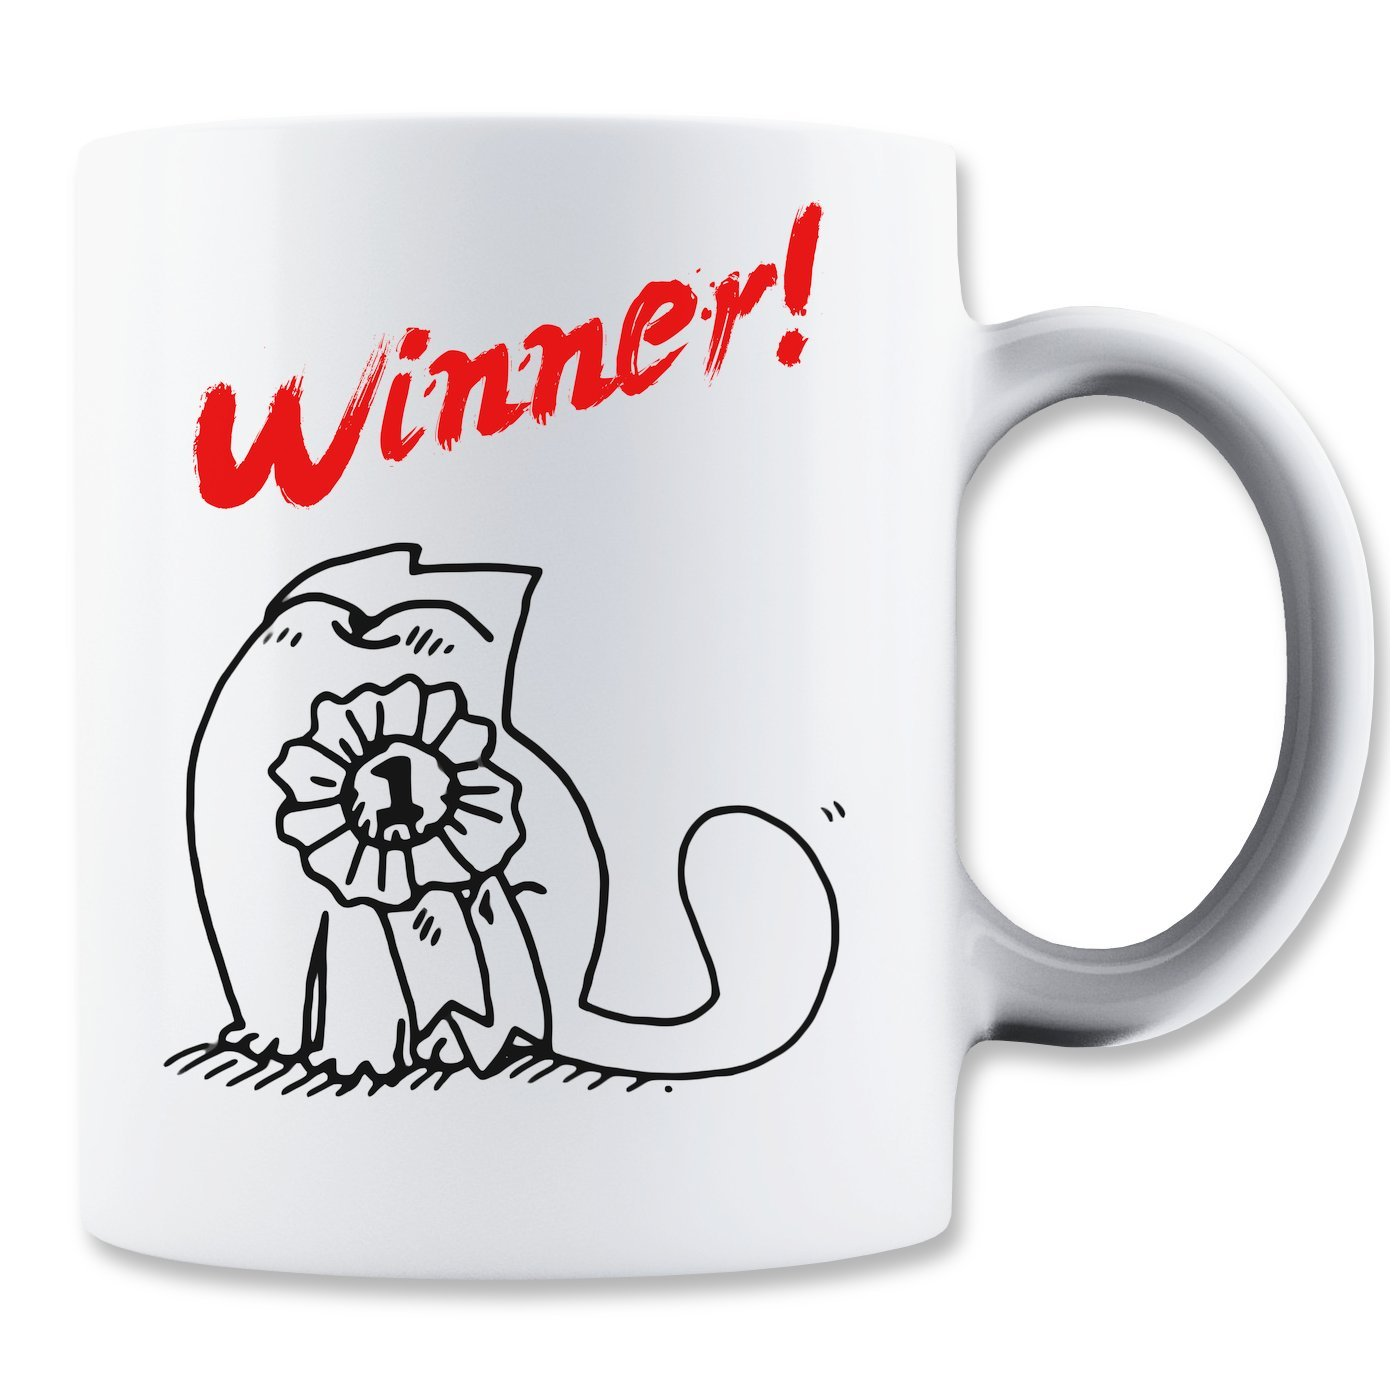 Kaffe-Tasser: Winner! (350 ml)